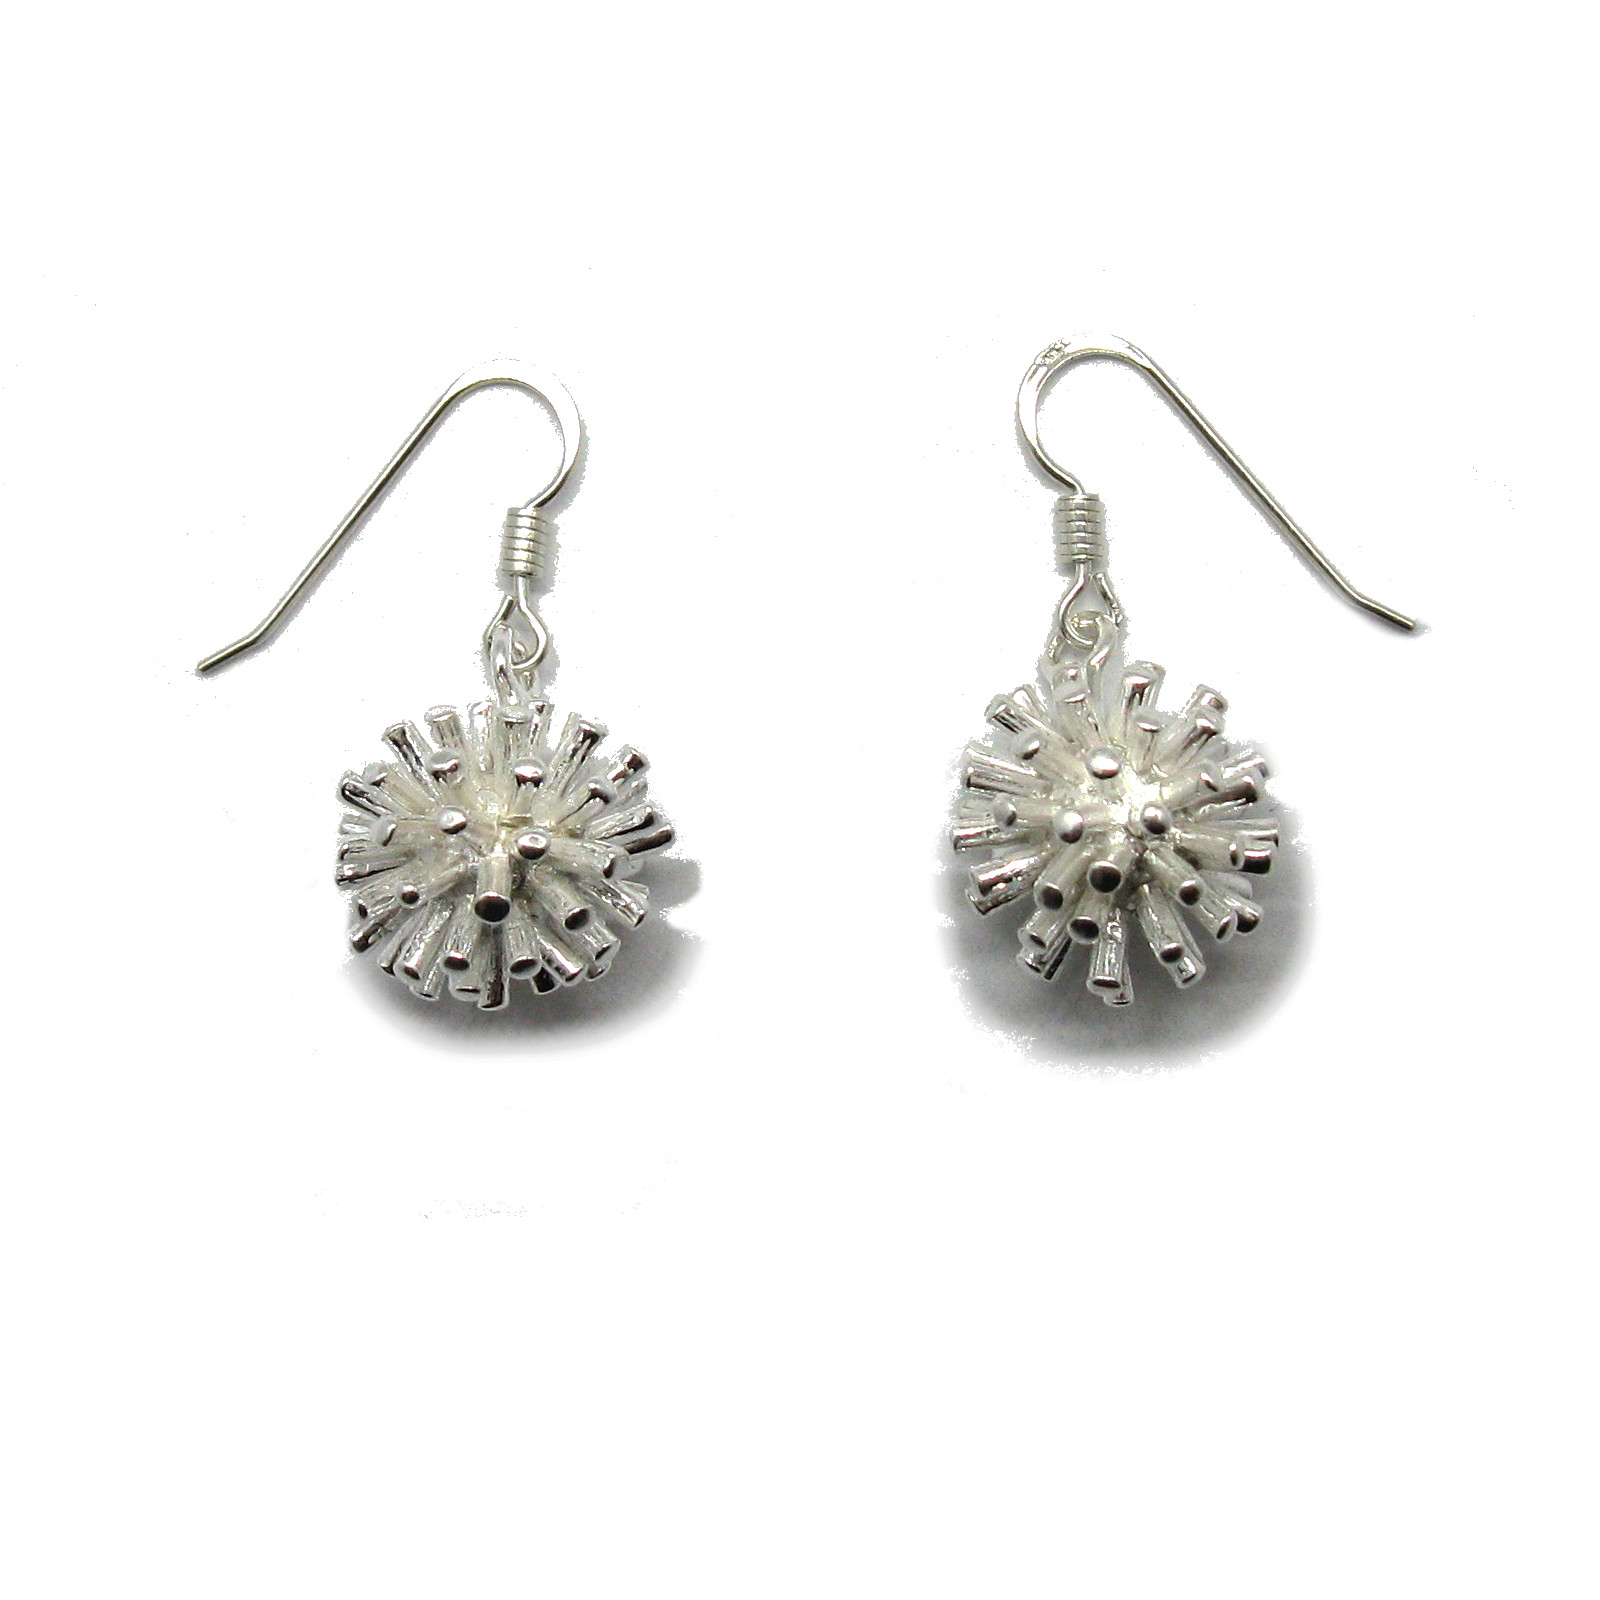 Silver earrings - E000746